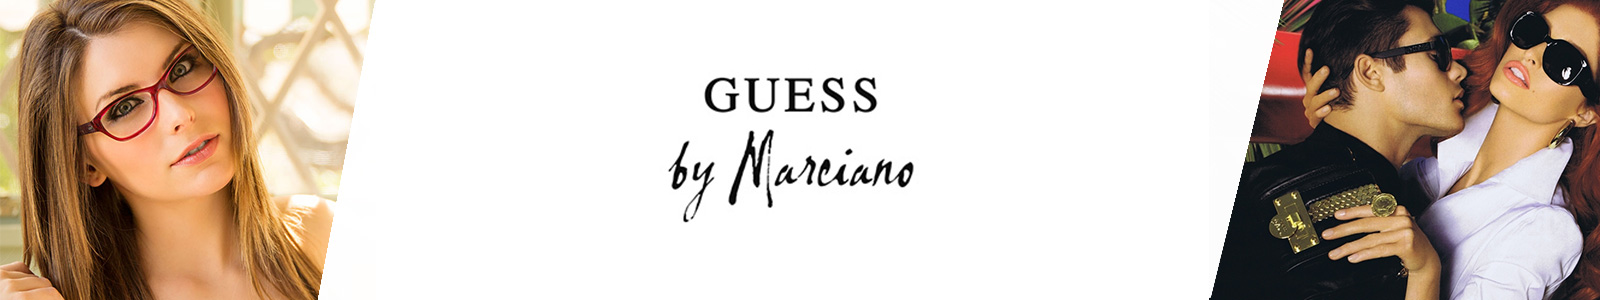 guess-marciano